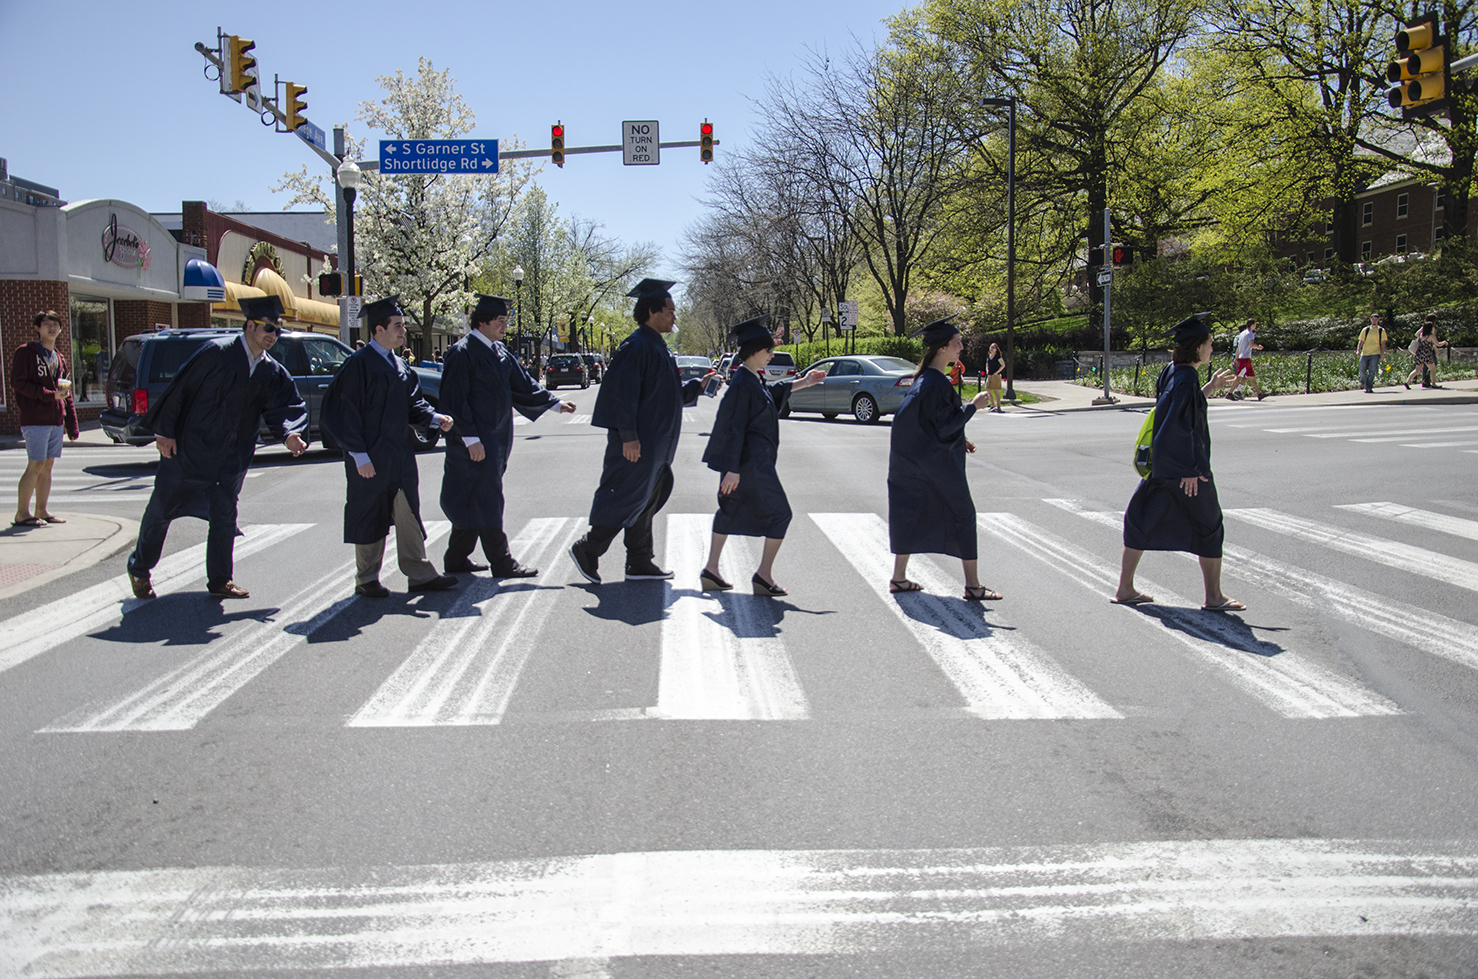 Grad abbey road